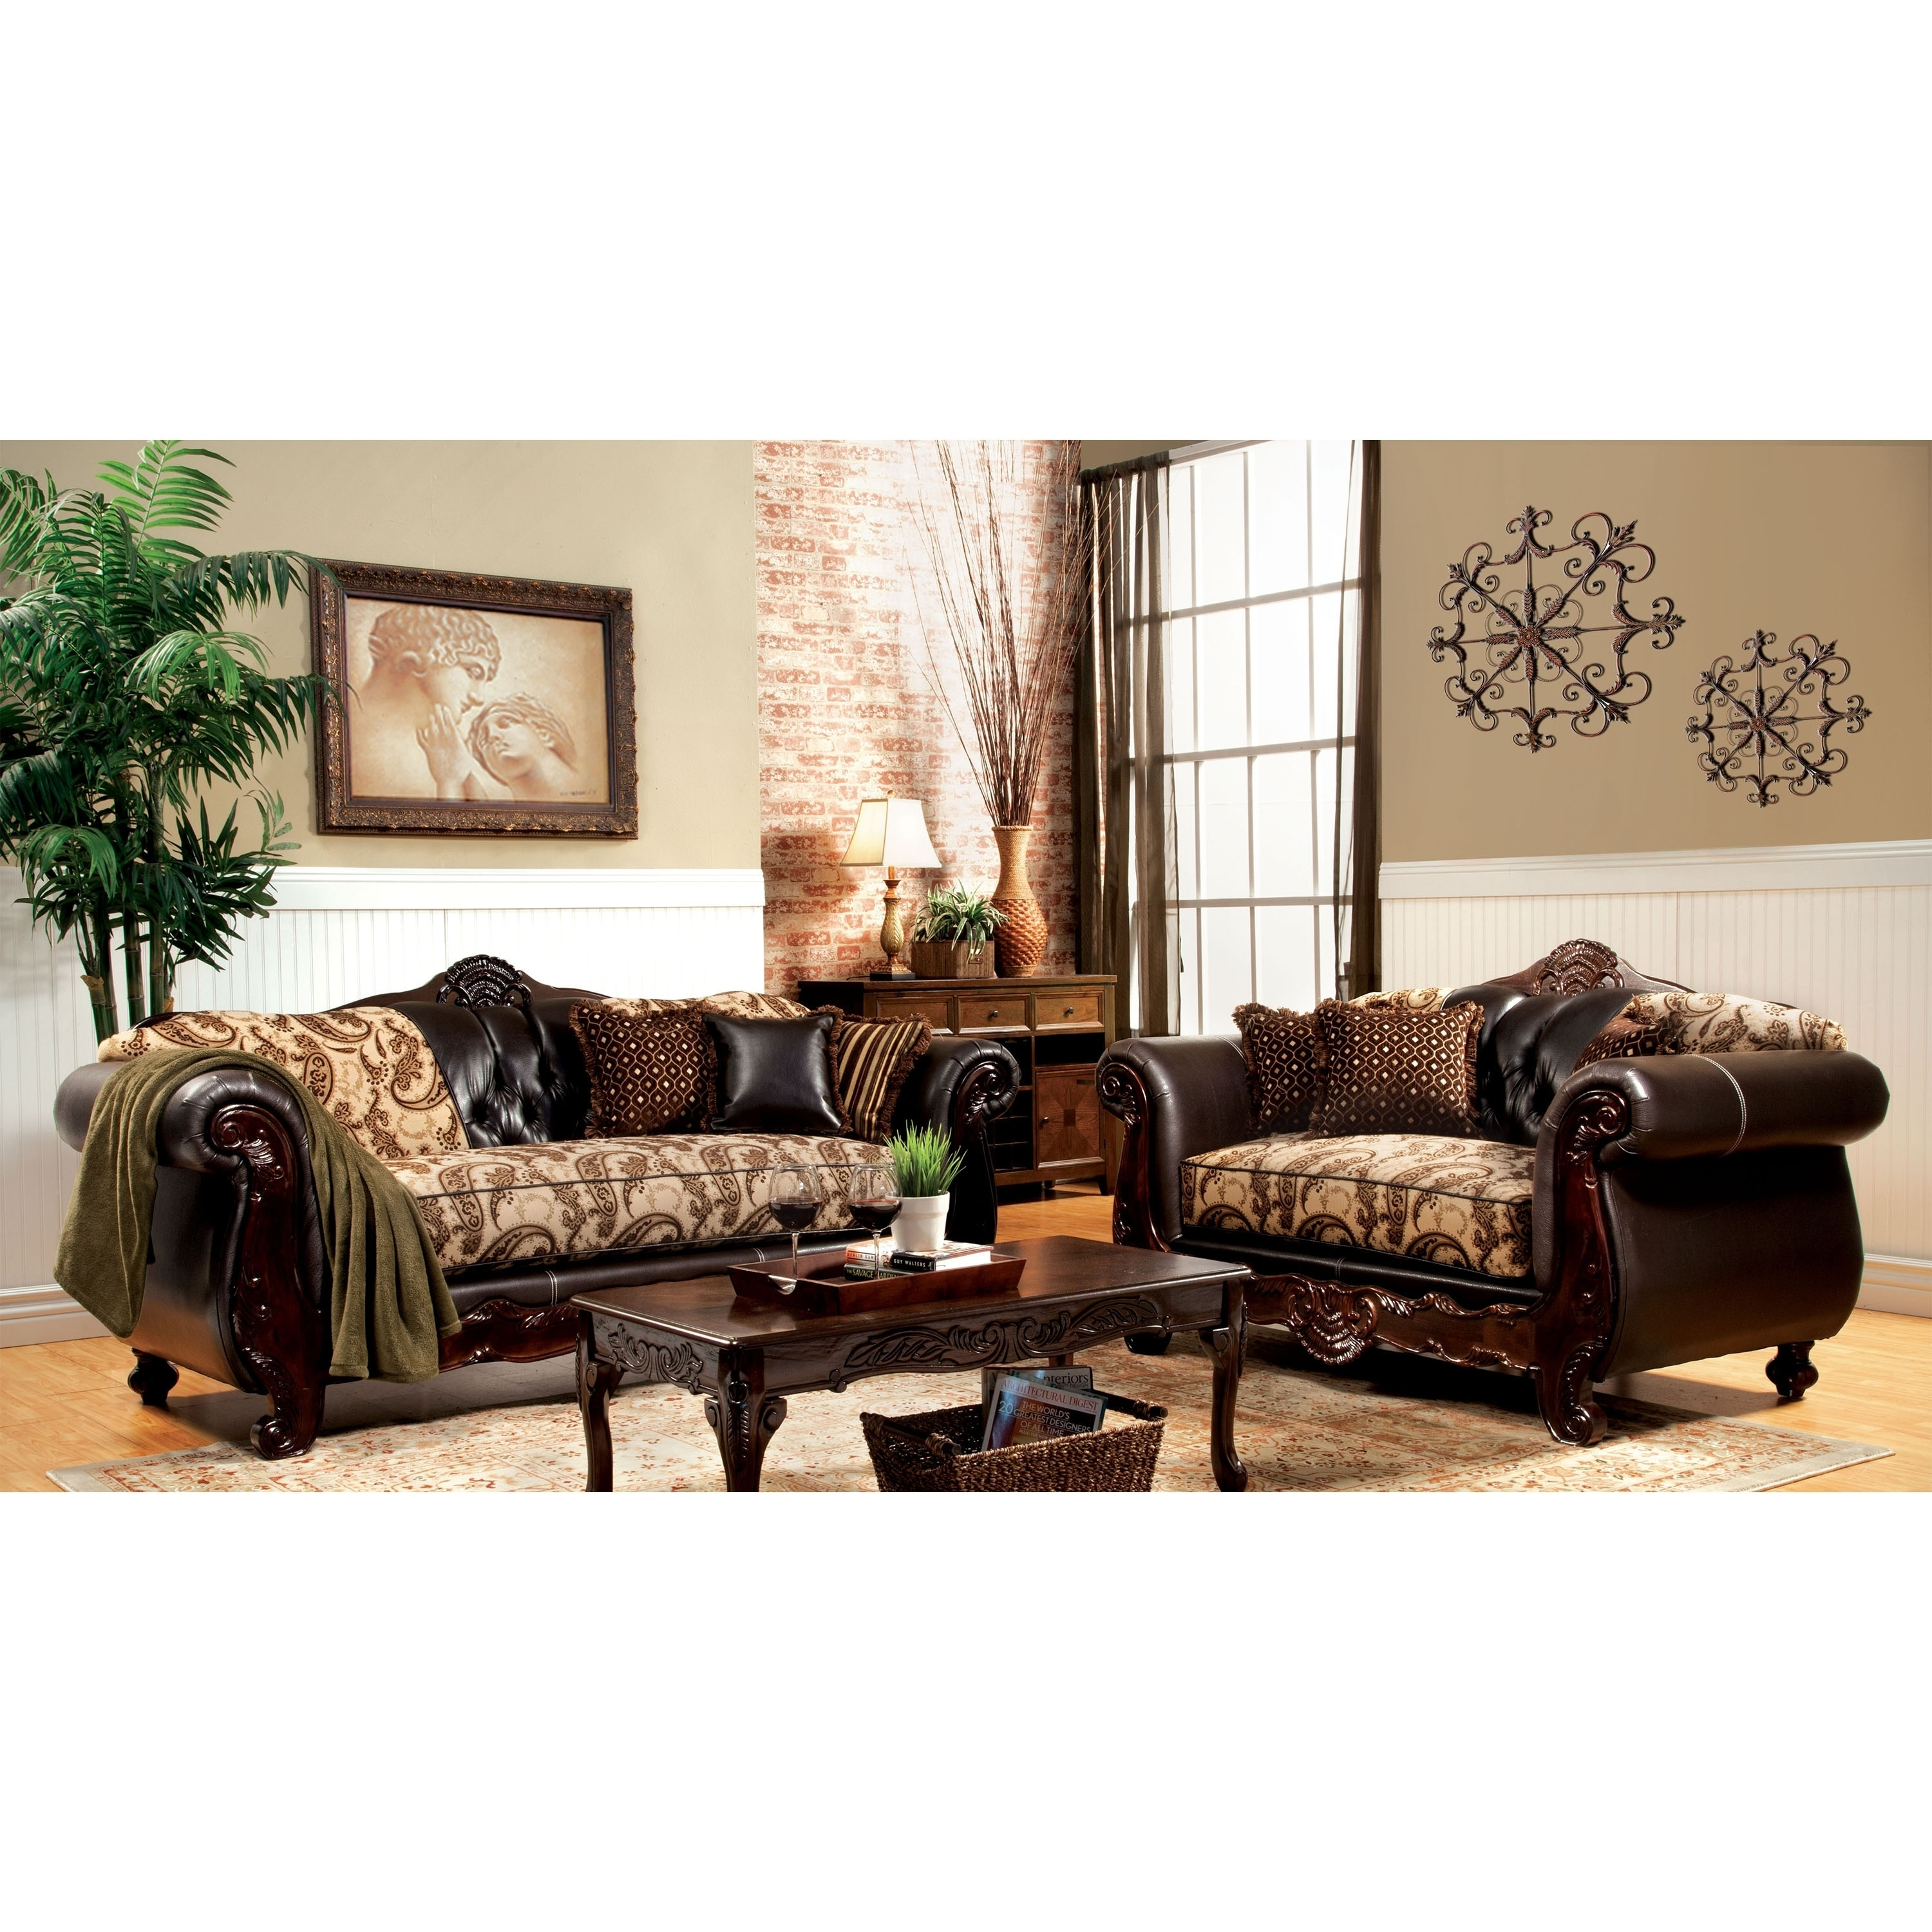 Furniture of America Marina 2-Piece Floral Fabric and Lea...